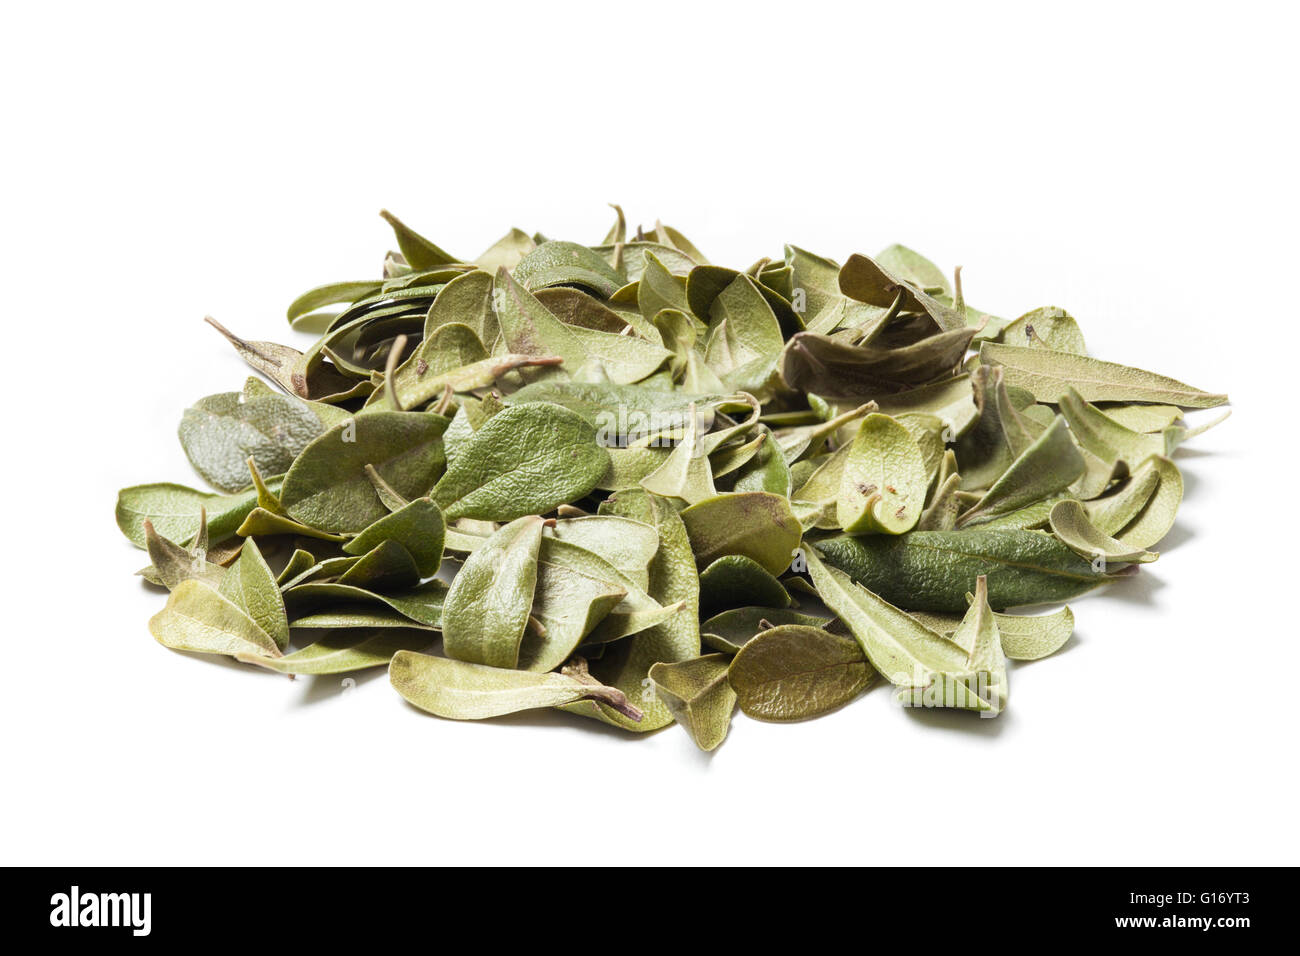 Bearberry leaves isolated on white background. Bearberry (Arctostaphylos uva-ursi) is a type of plant of the genus - Stock Image